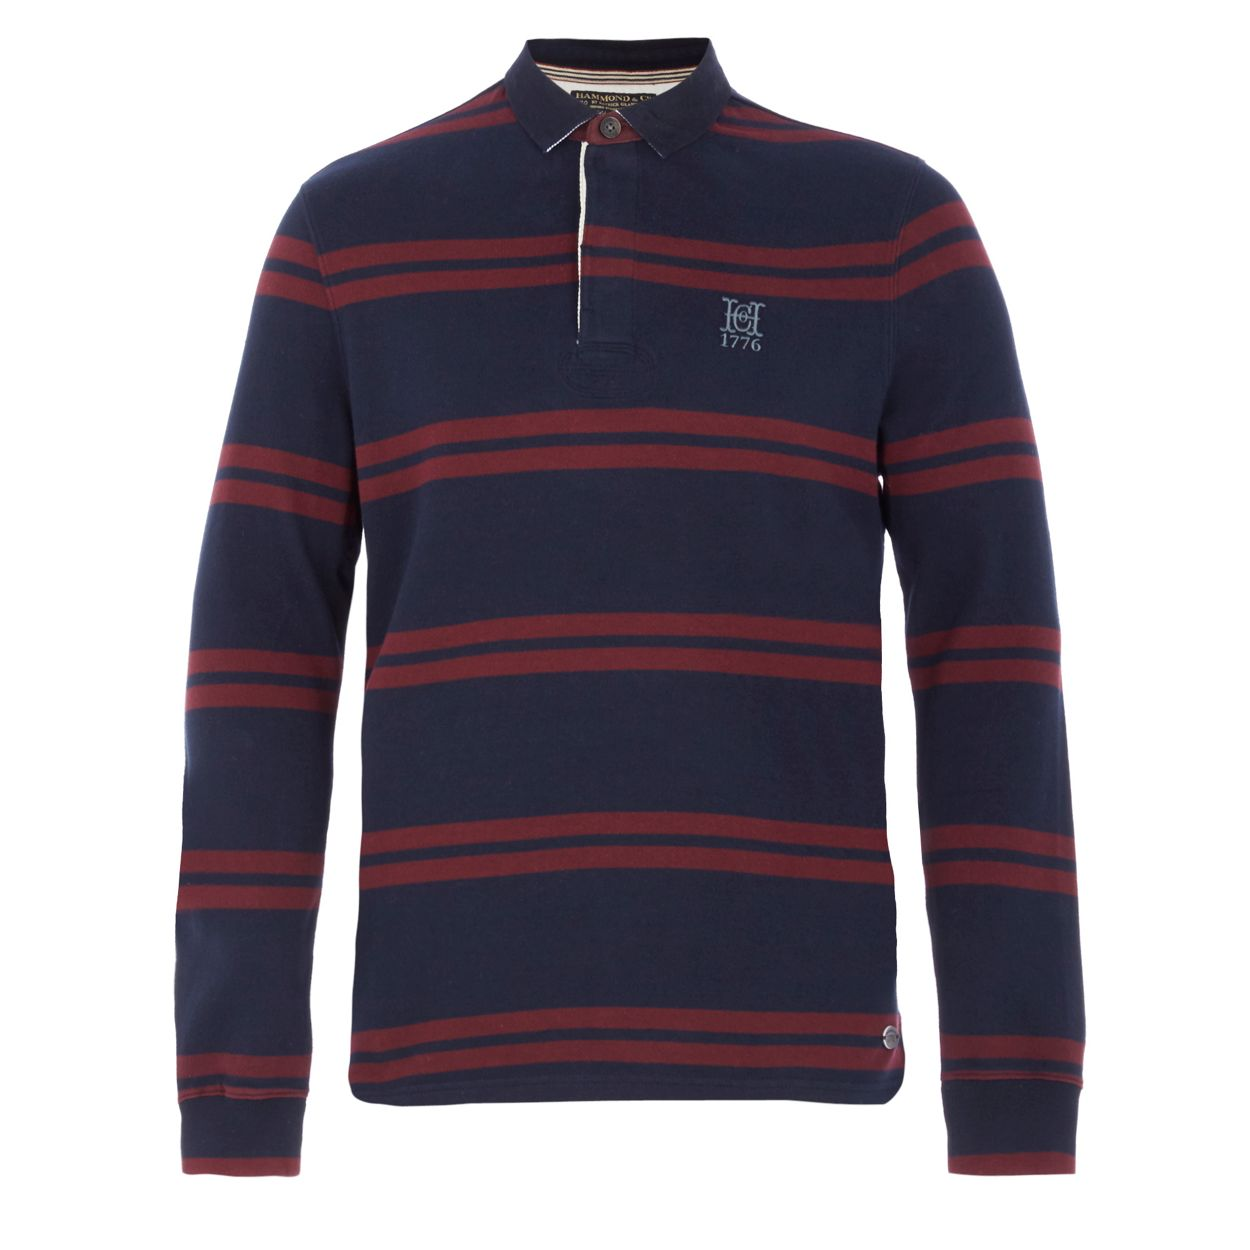 Hammond & Co. by Patrick Grant Navy striped rugby shirt